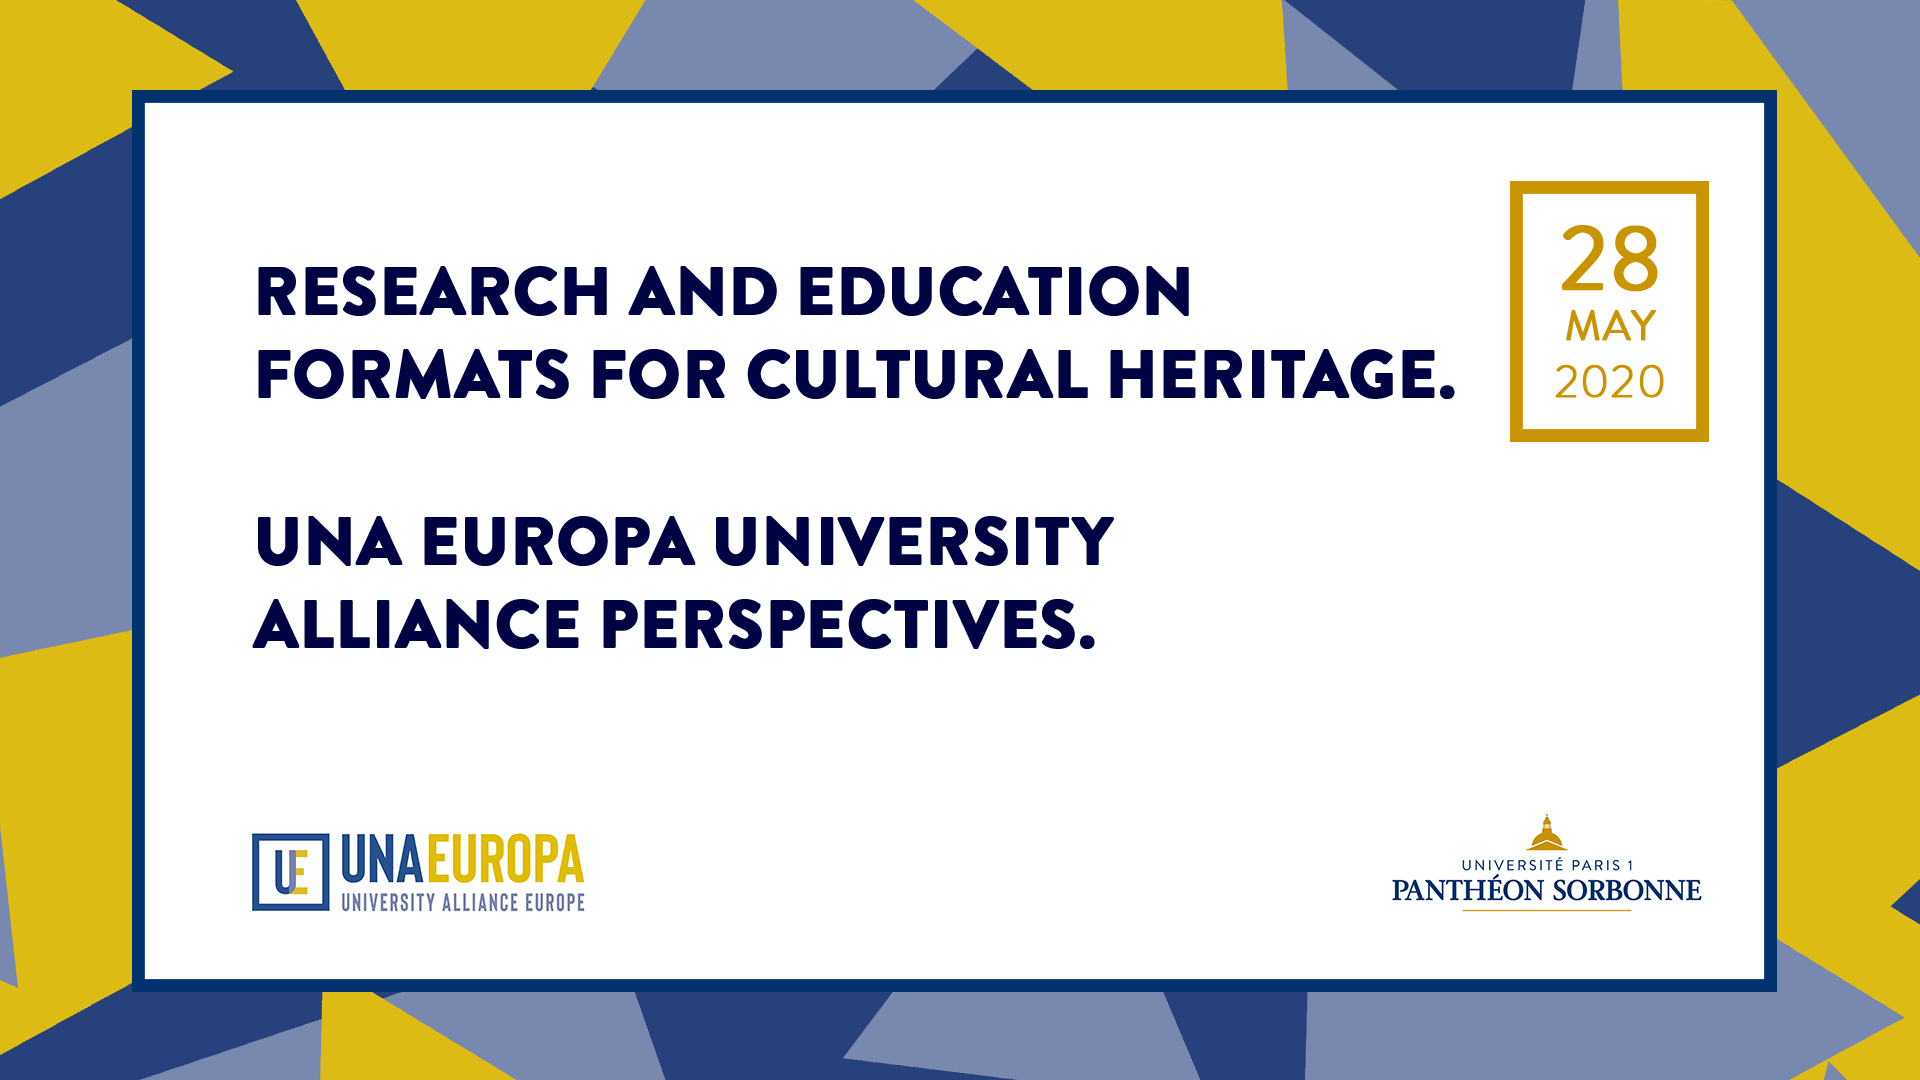 Research and Education Formats for Cultural Heritage. UNA Europa University Alliance Perspectives.